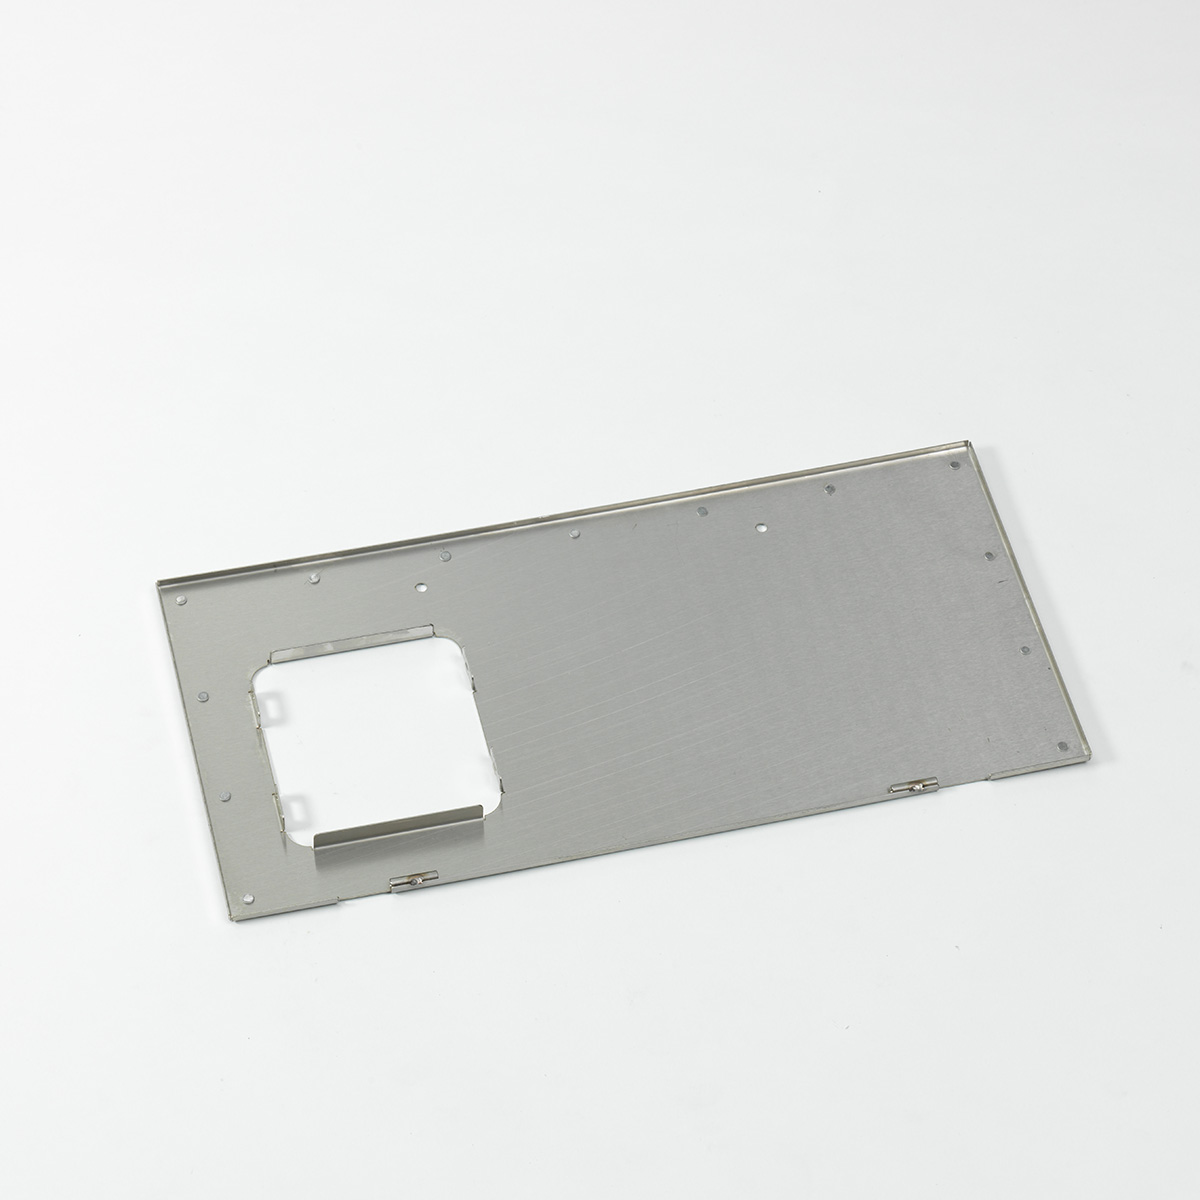 AIRMKT eCom PN 39764W-01 Stainless Steel Upgrade with Rivets-Furnace Back 41696 WEB